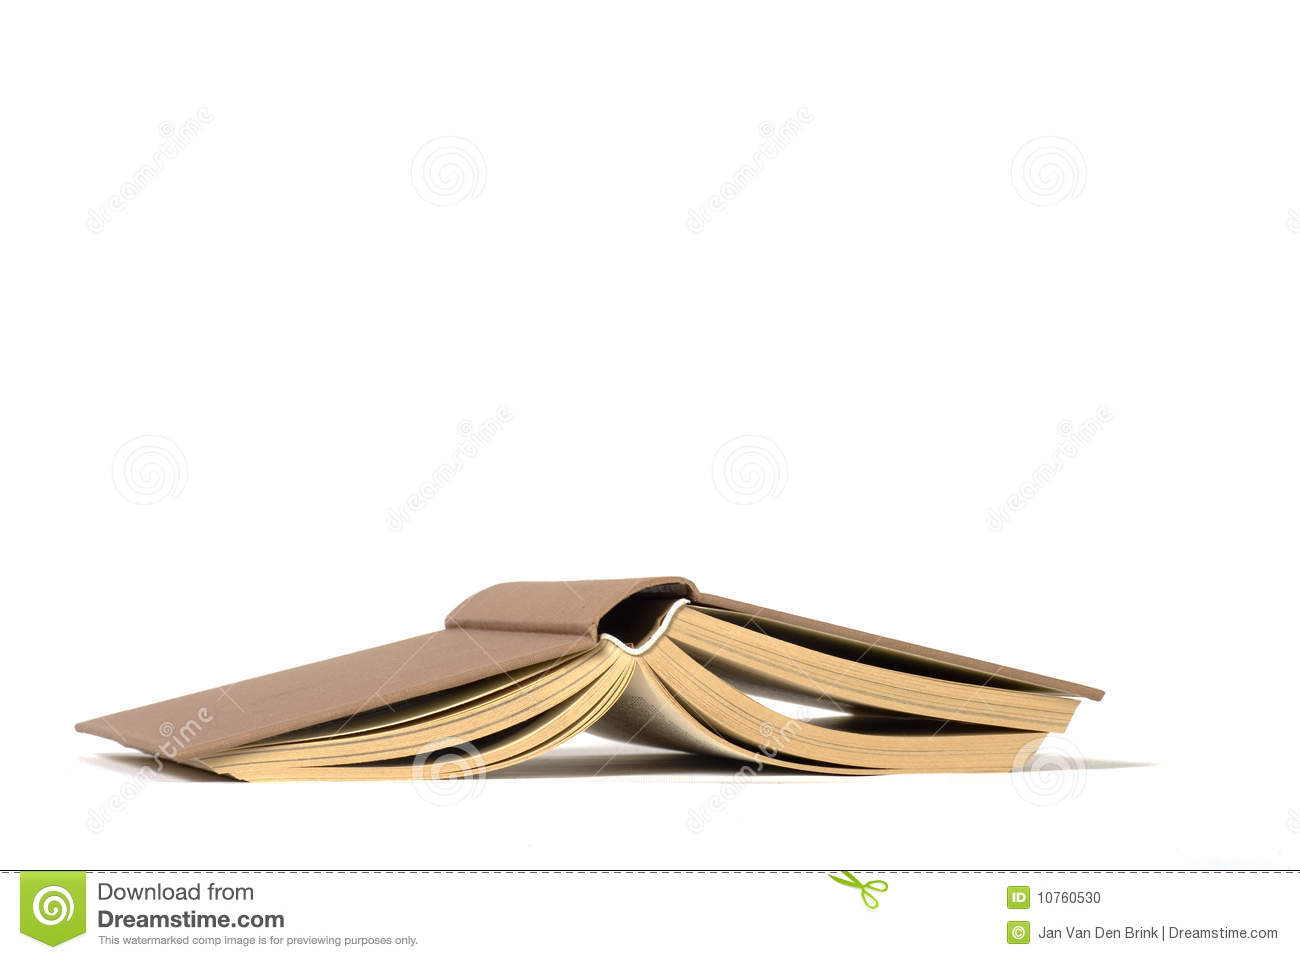 Book upside down clipart picture royalty free library Upside Down Book Clipart picture royalty free library